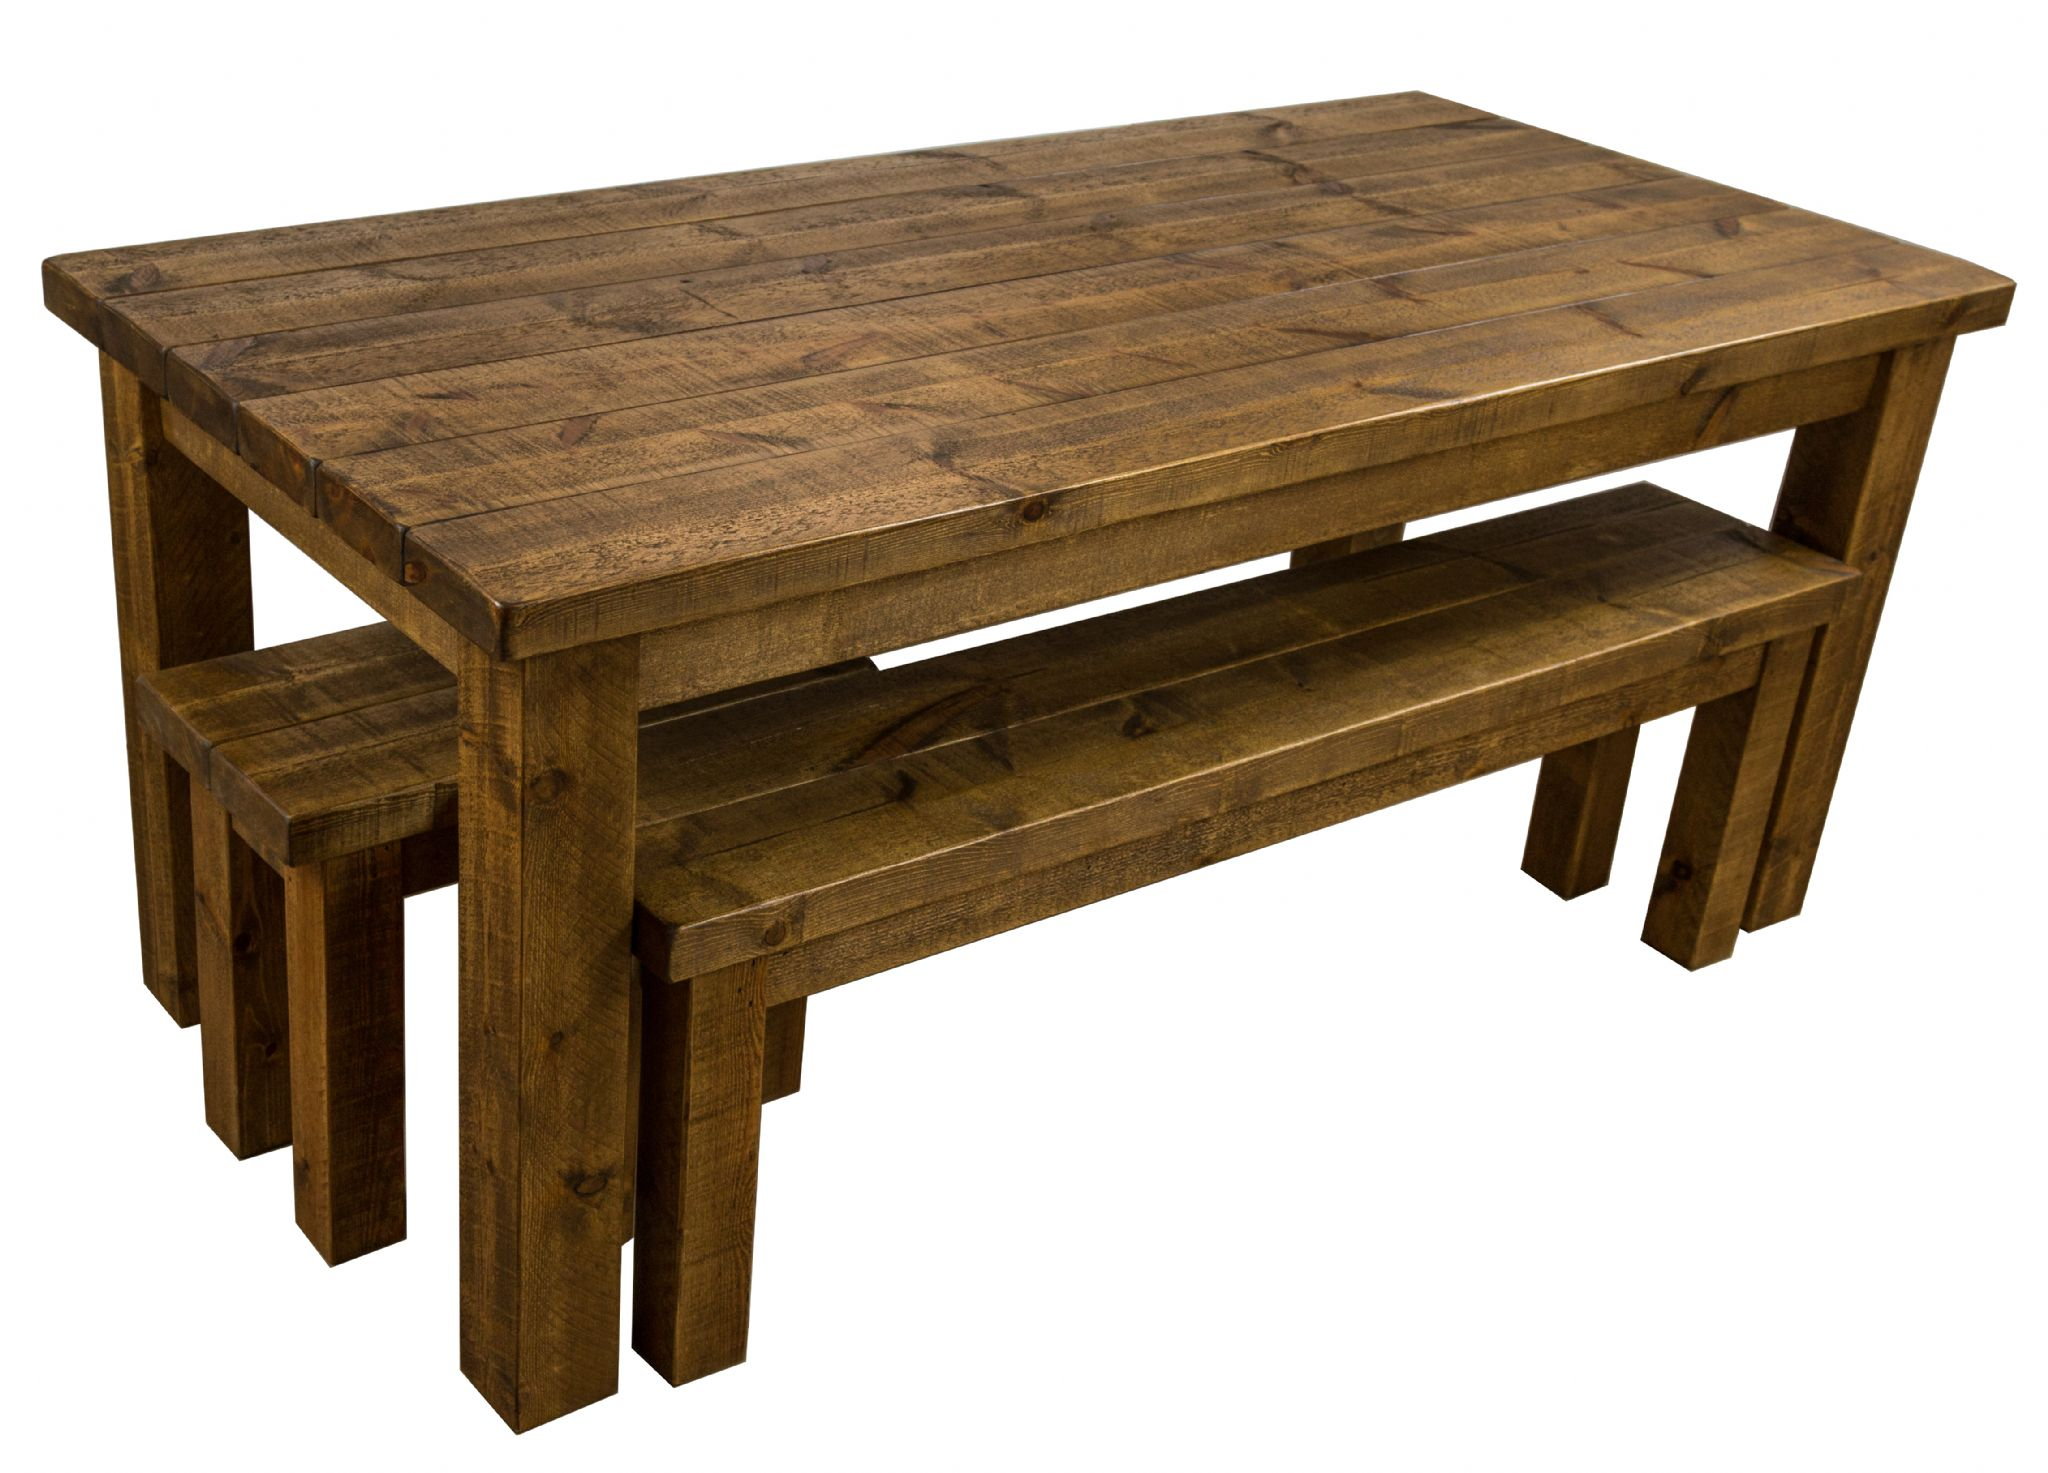 Tortuga Rustic 6x3 Wooden Farmhouse Dining Table With 2